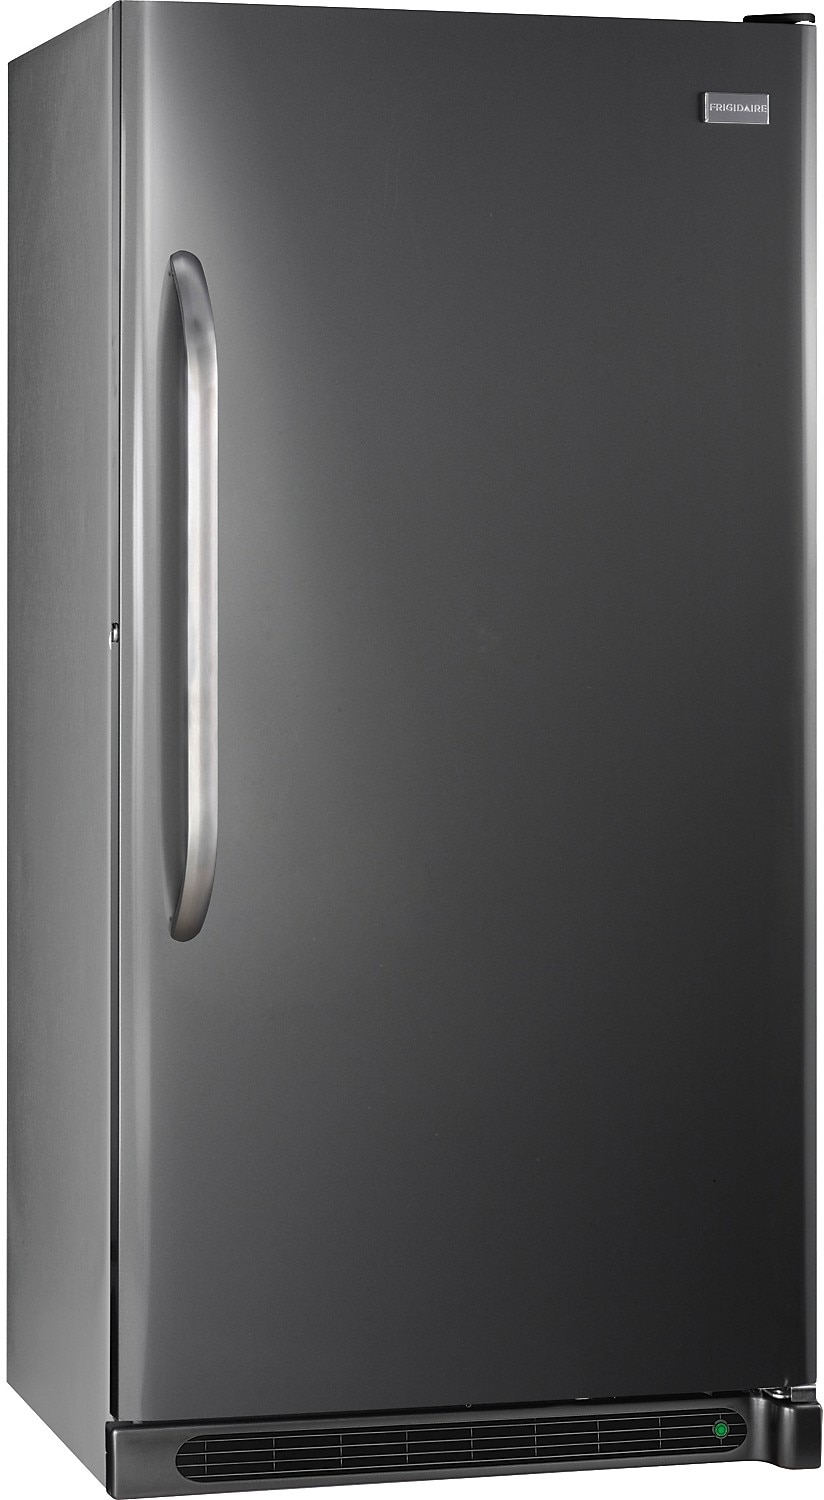 Refrigerators and Freezers - Frigidaire 16.6 Cu. Ft. Frost-Free Upright Freezer - Slate